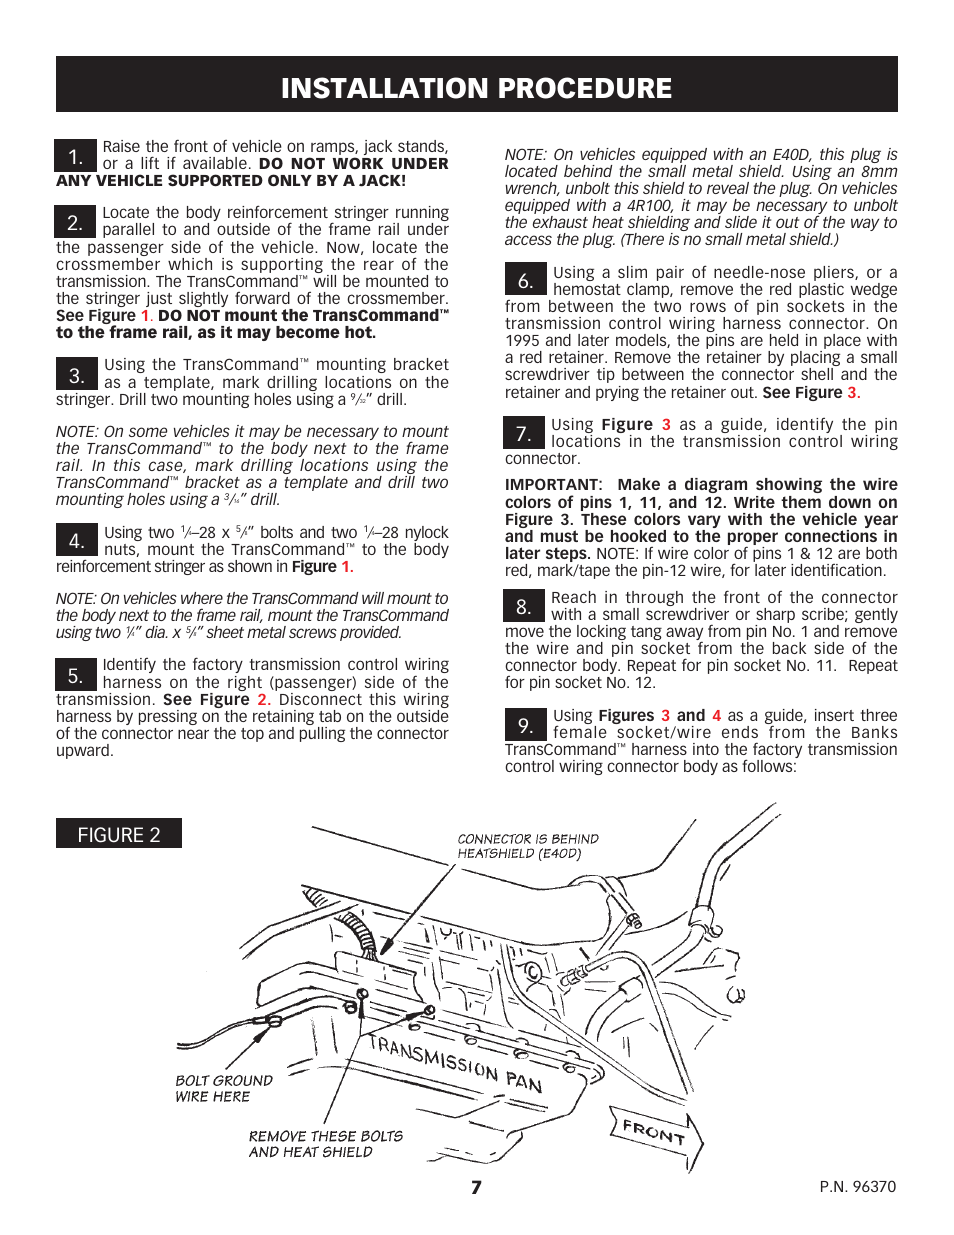 Installation Procedure Banks Power Ford Trucks Gas 87 97 75l Wire Harness Shield Efi Powertrain Transcommand For E40d 4r100 Transmissions User Manual Page 7 10